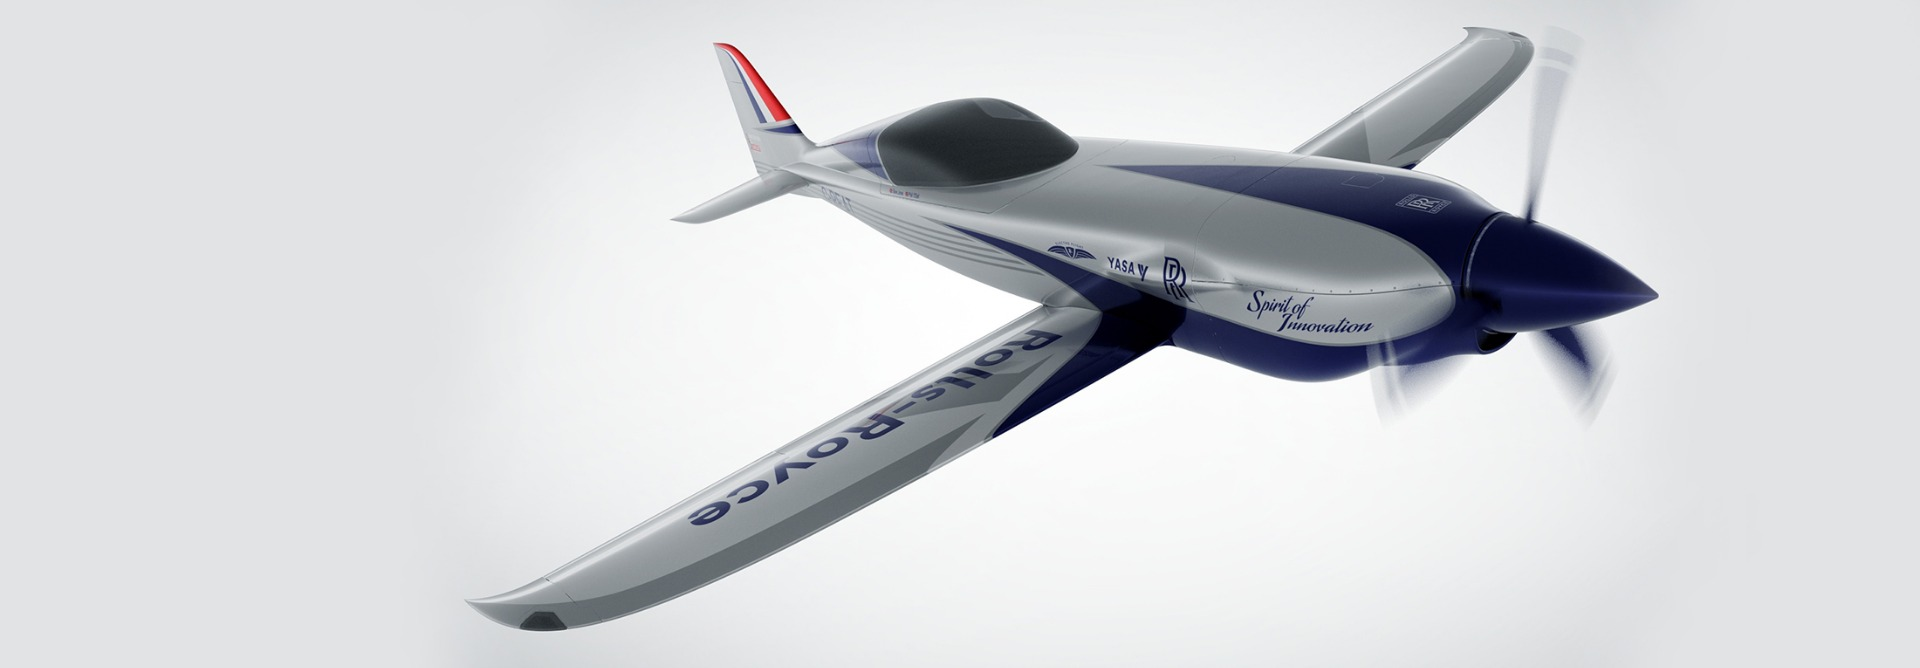 Rolls-Royce looks to smash speed record with the world's fastest electric airplane